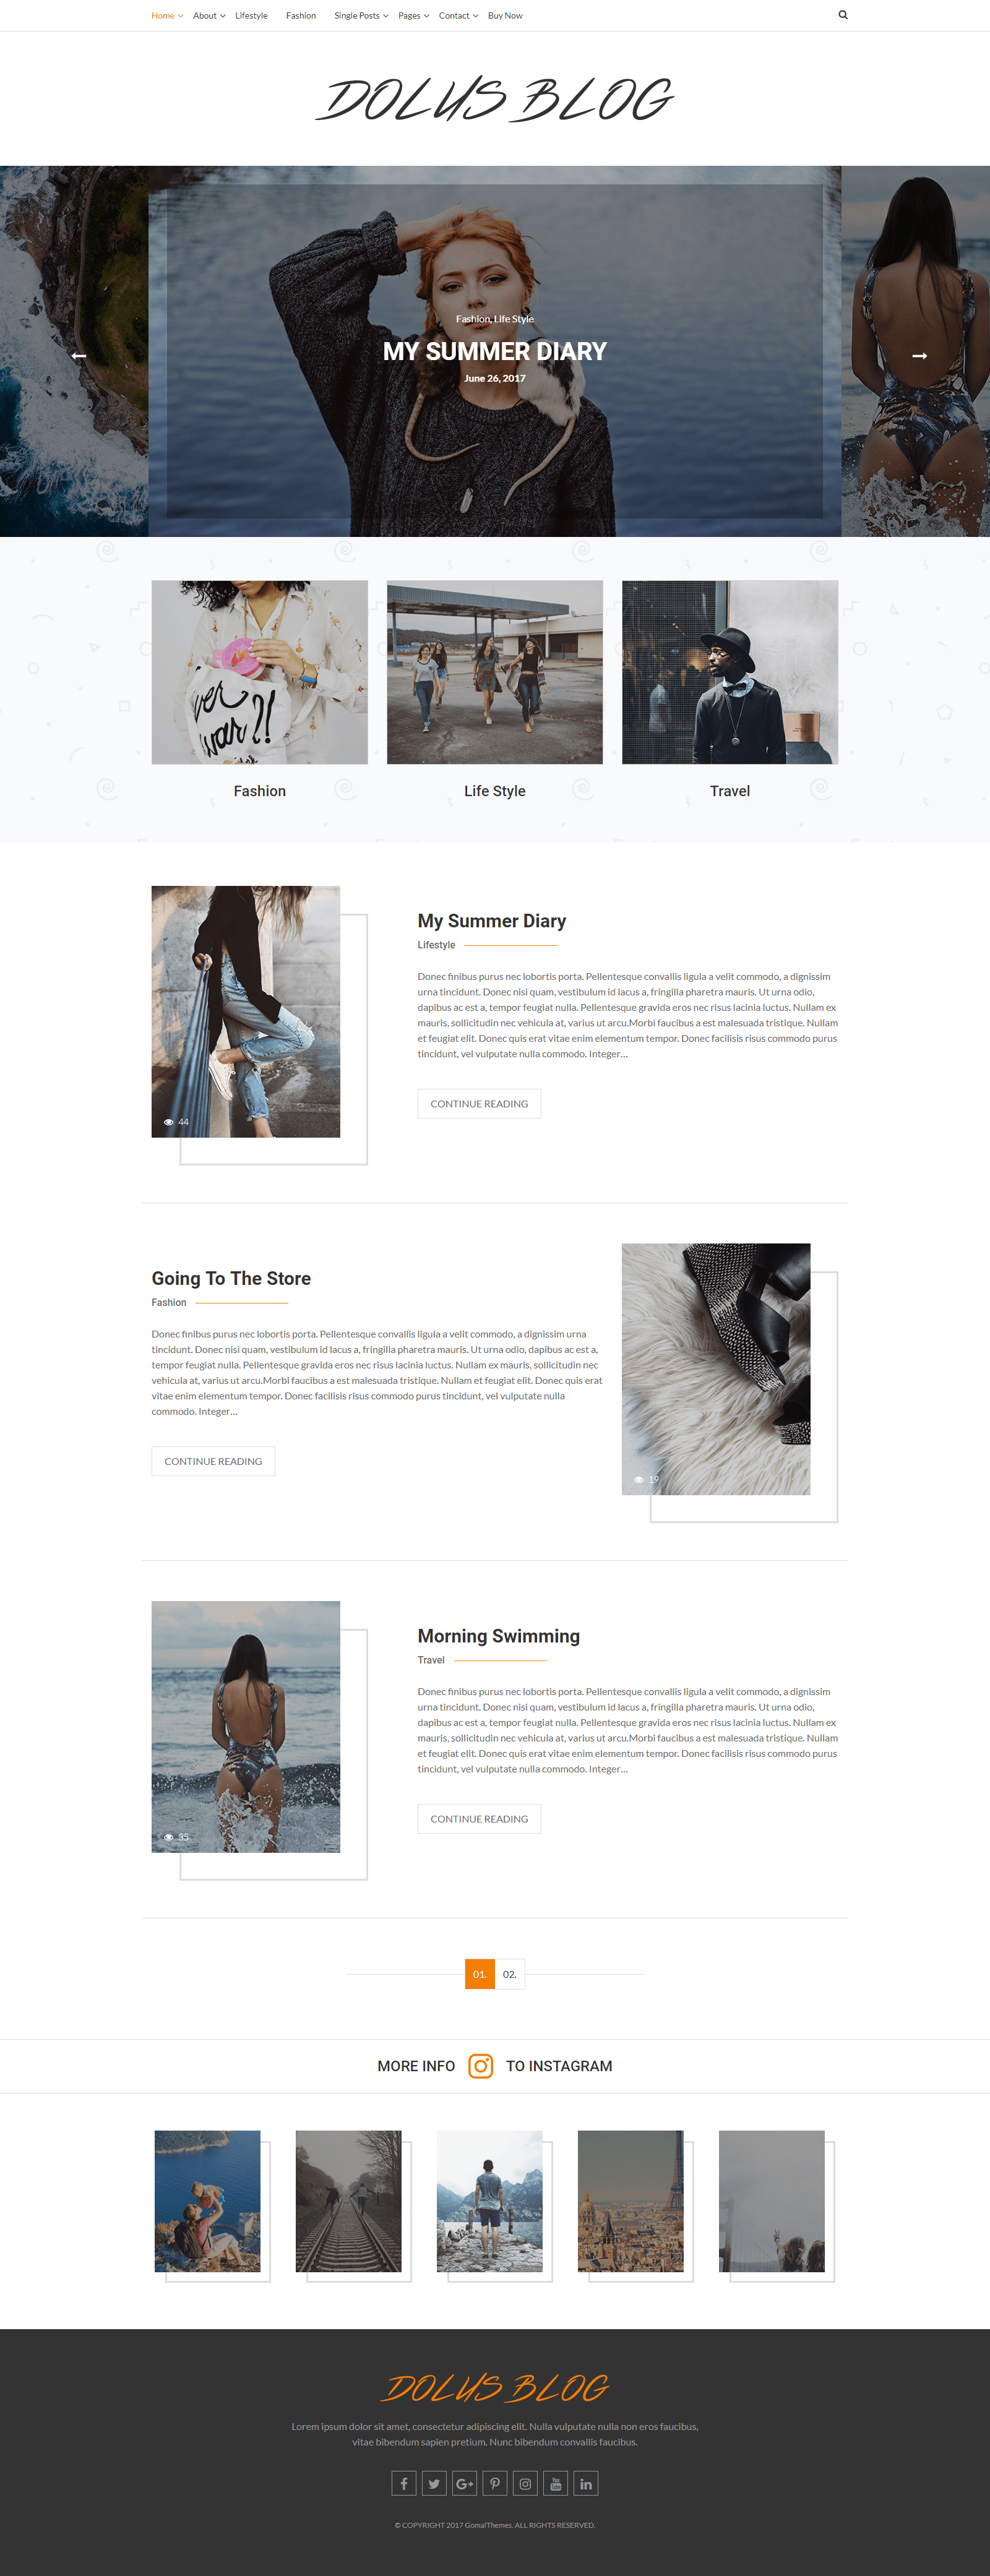 Dolus – Best Personal Blog WordPress Themes for blogger websites